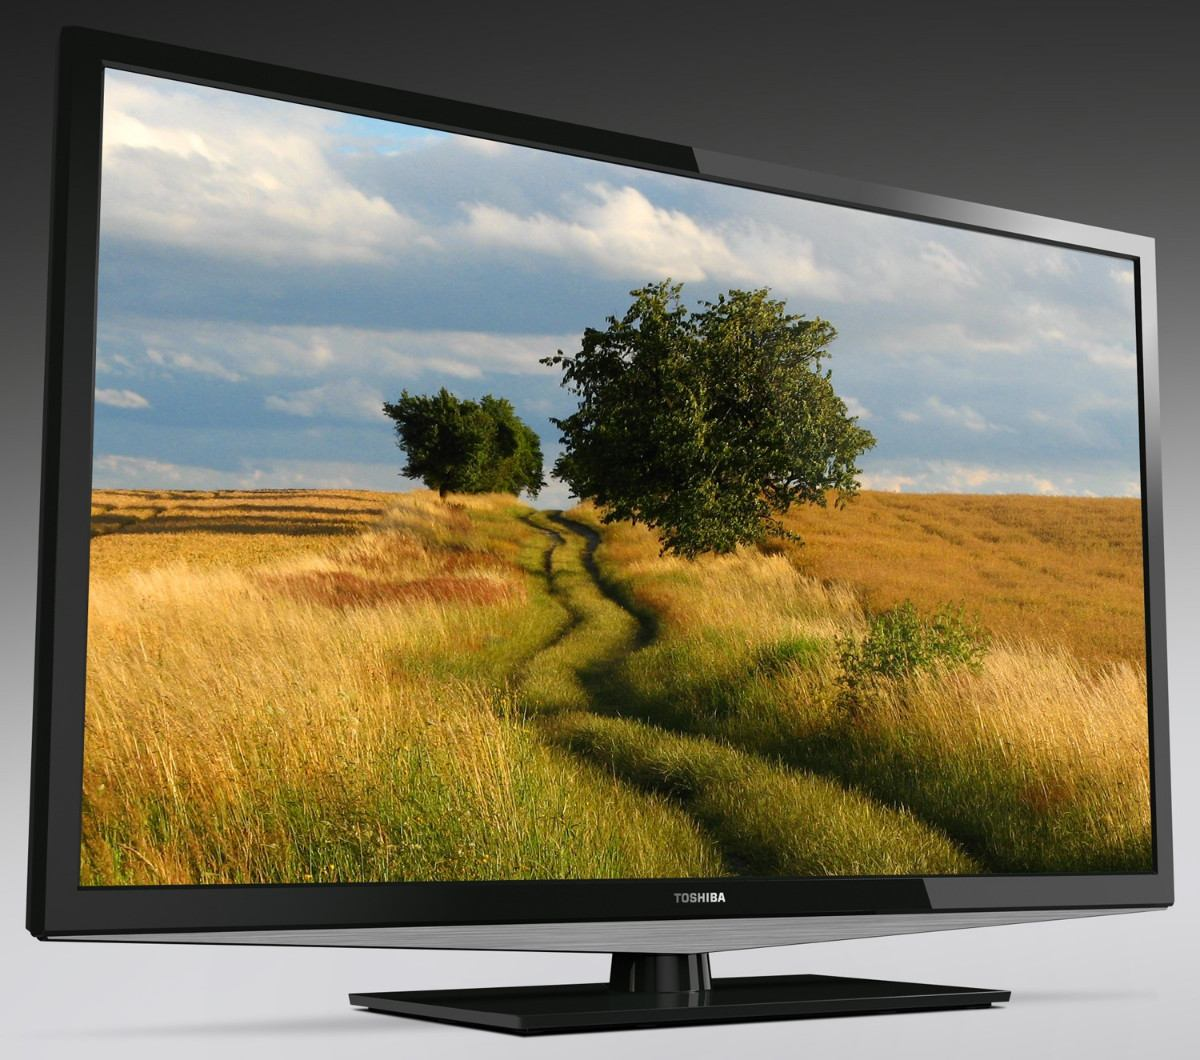 toshiba-50m2u-50-led-tv-full-hd-1080p_MLM-F-4004318044_032013